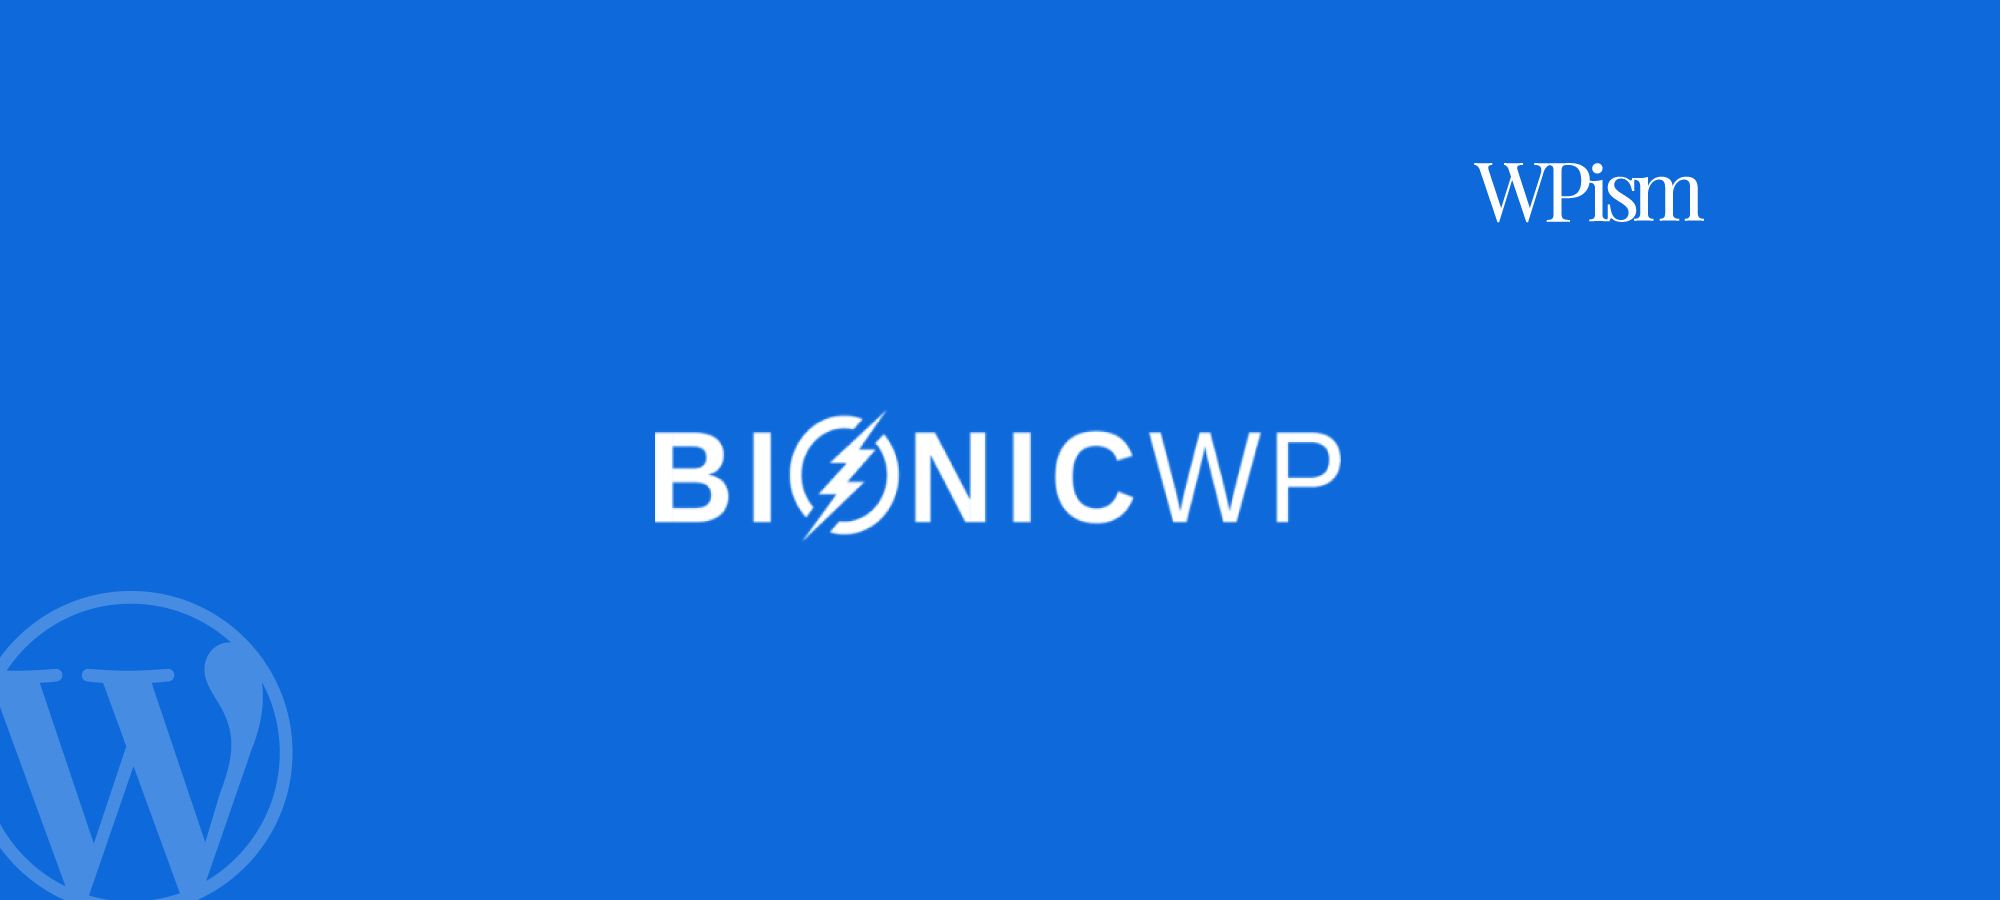 BionicWP Review WordPress Hosting WPism